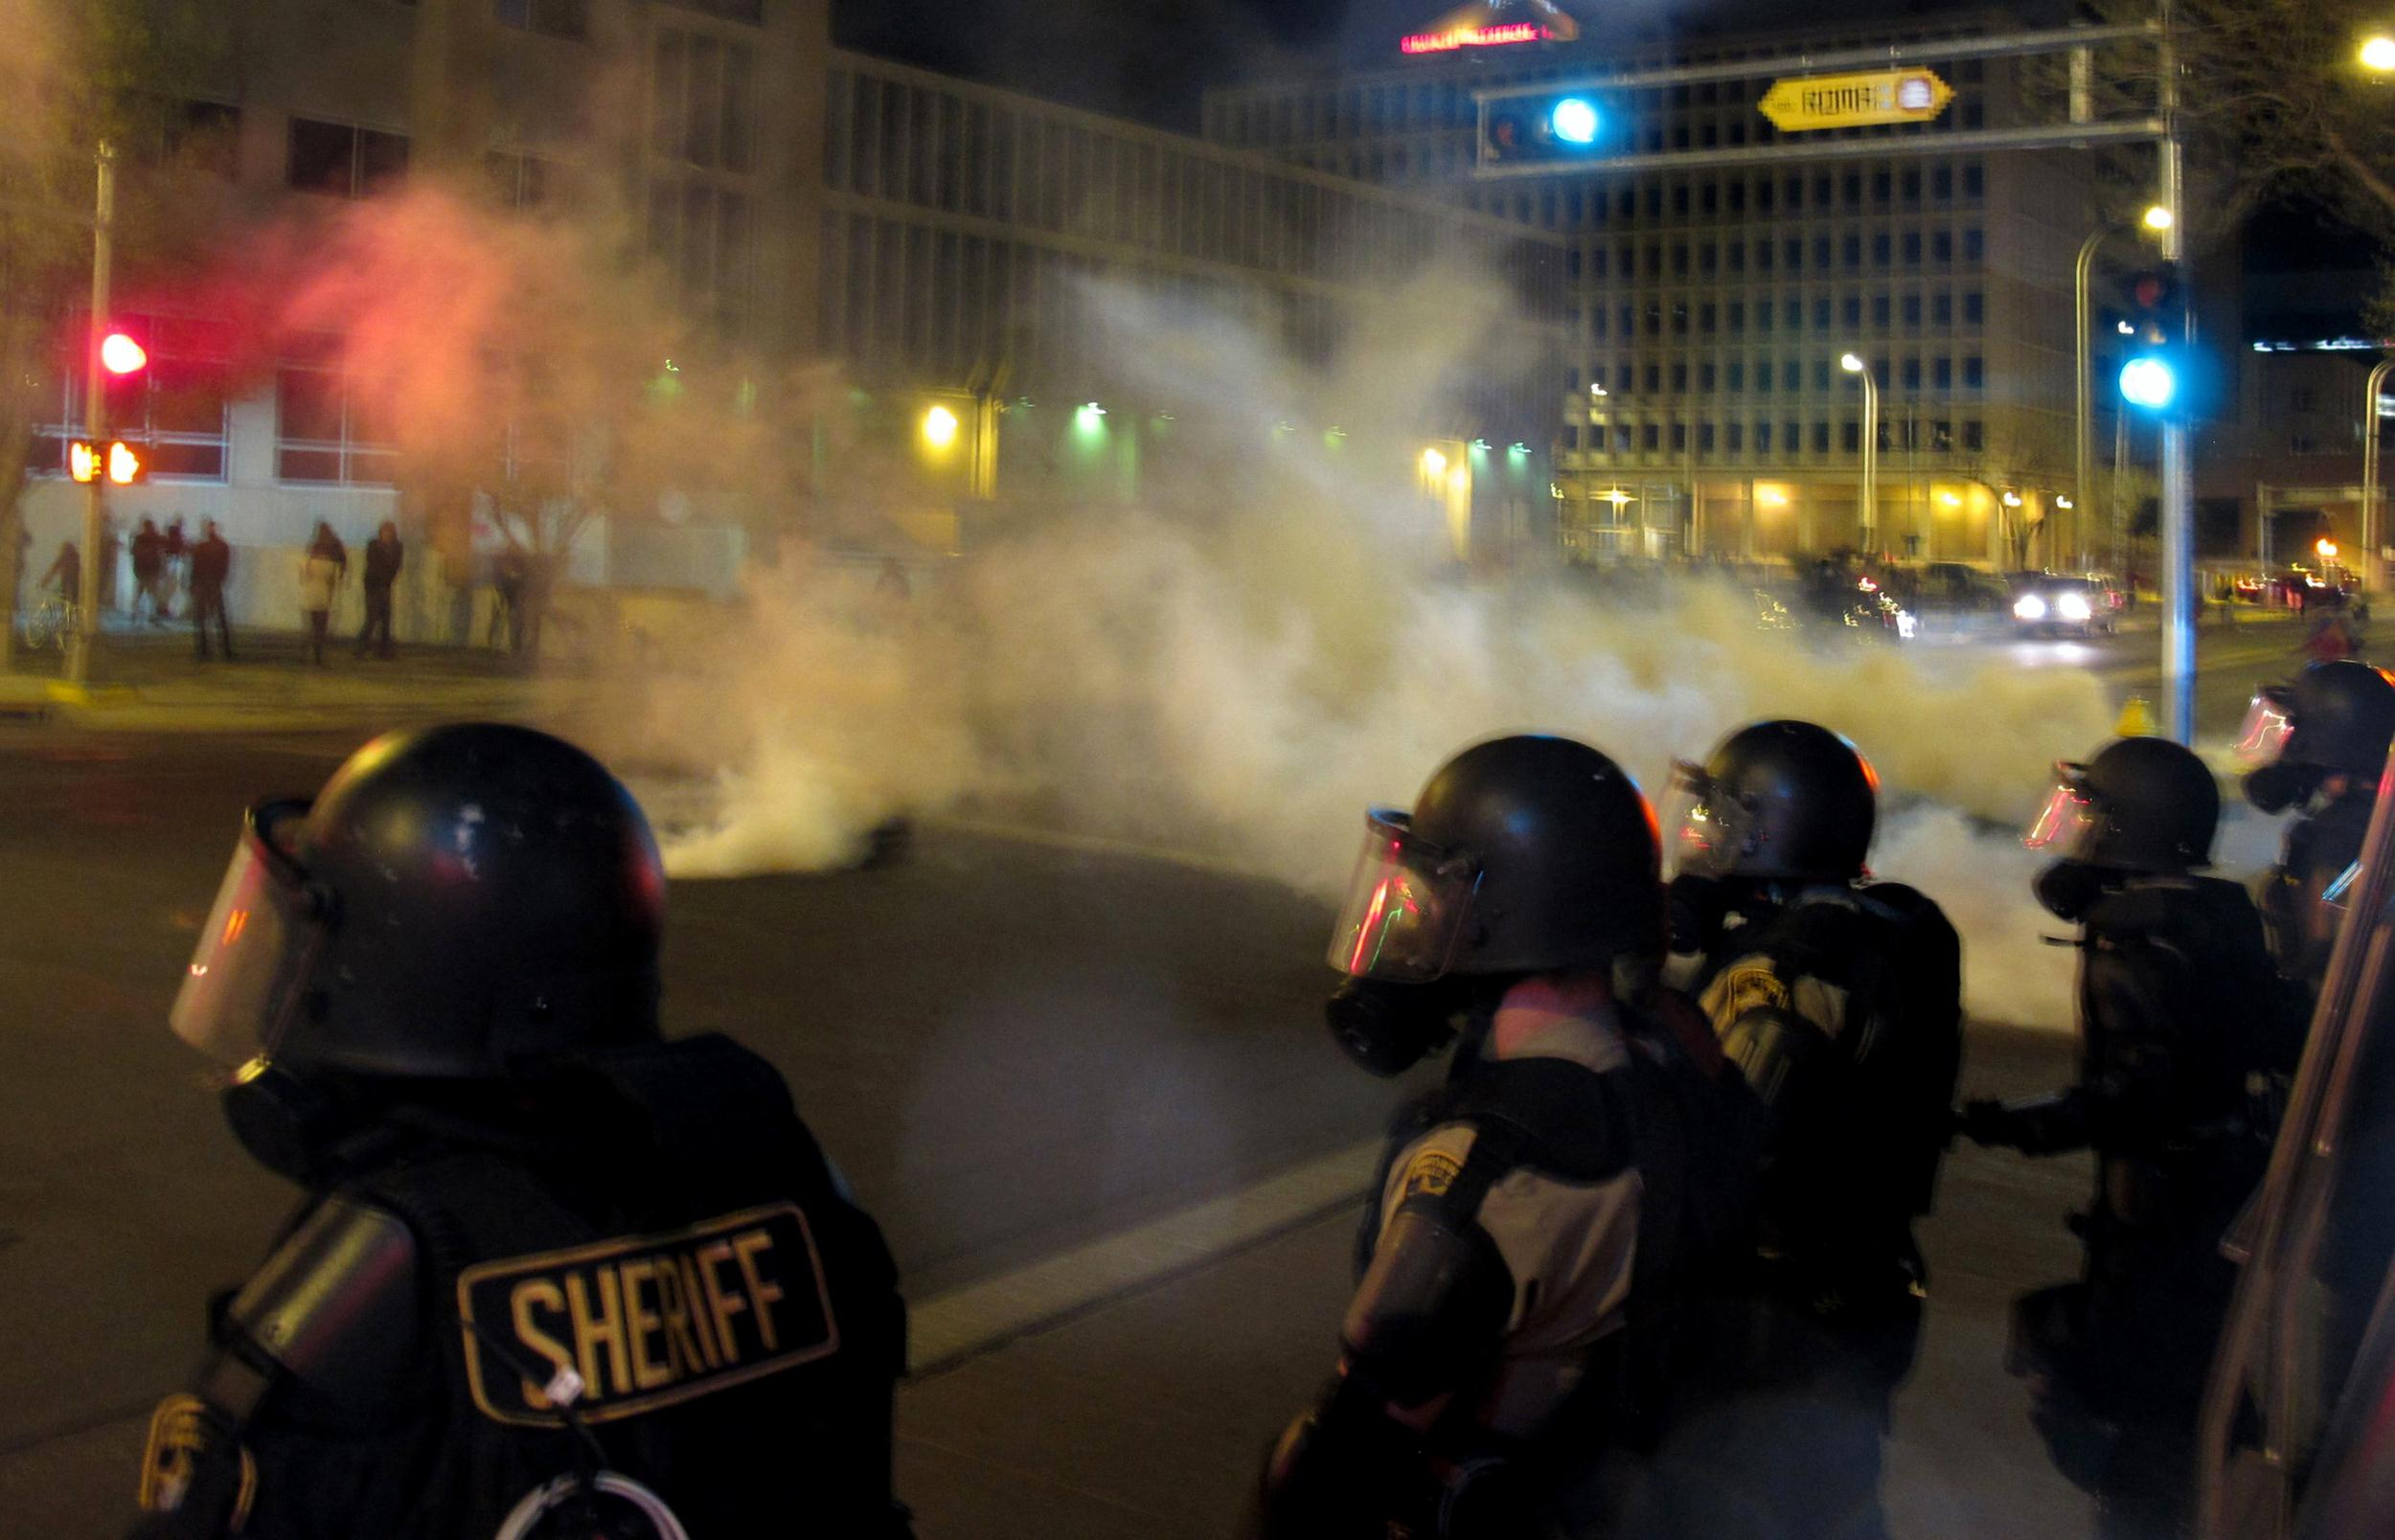 Image: Riot police launch tear gas toward activists in downtown Albuquerque